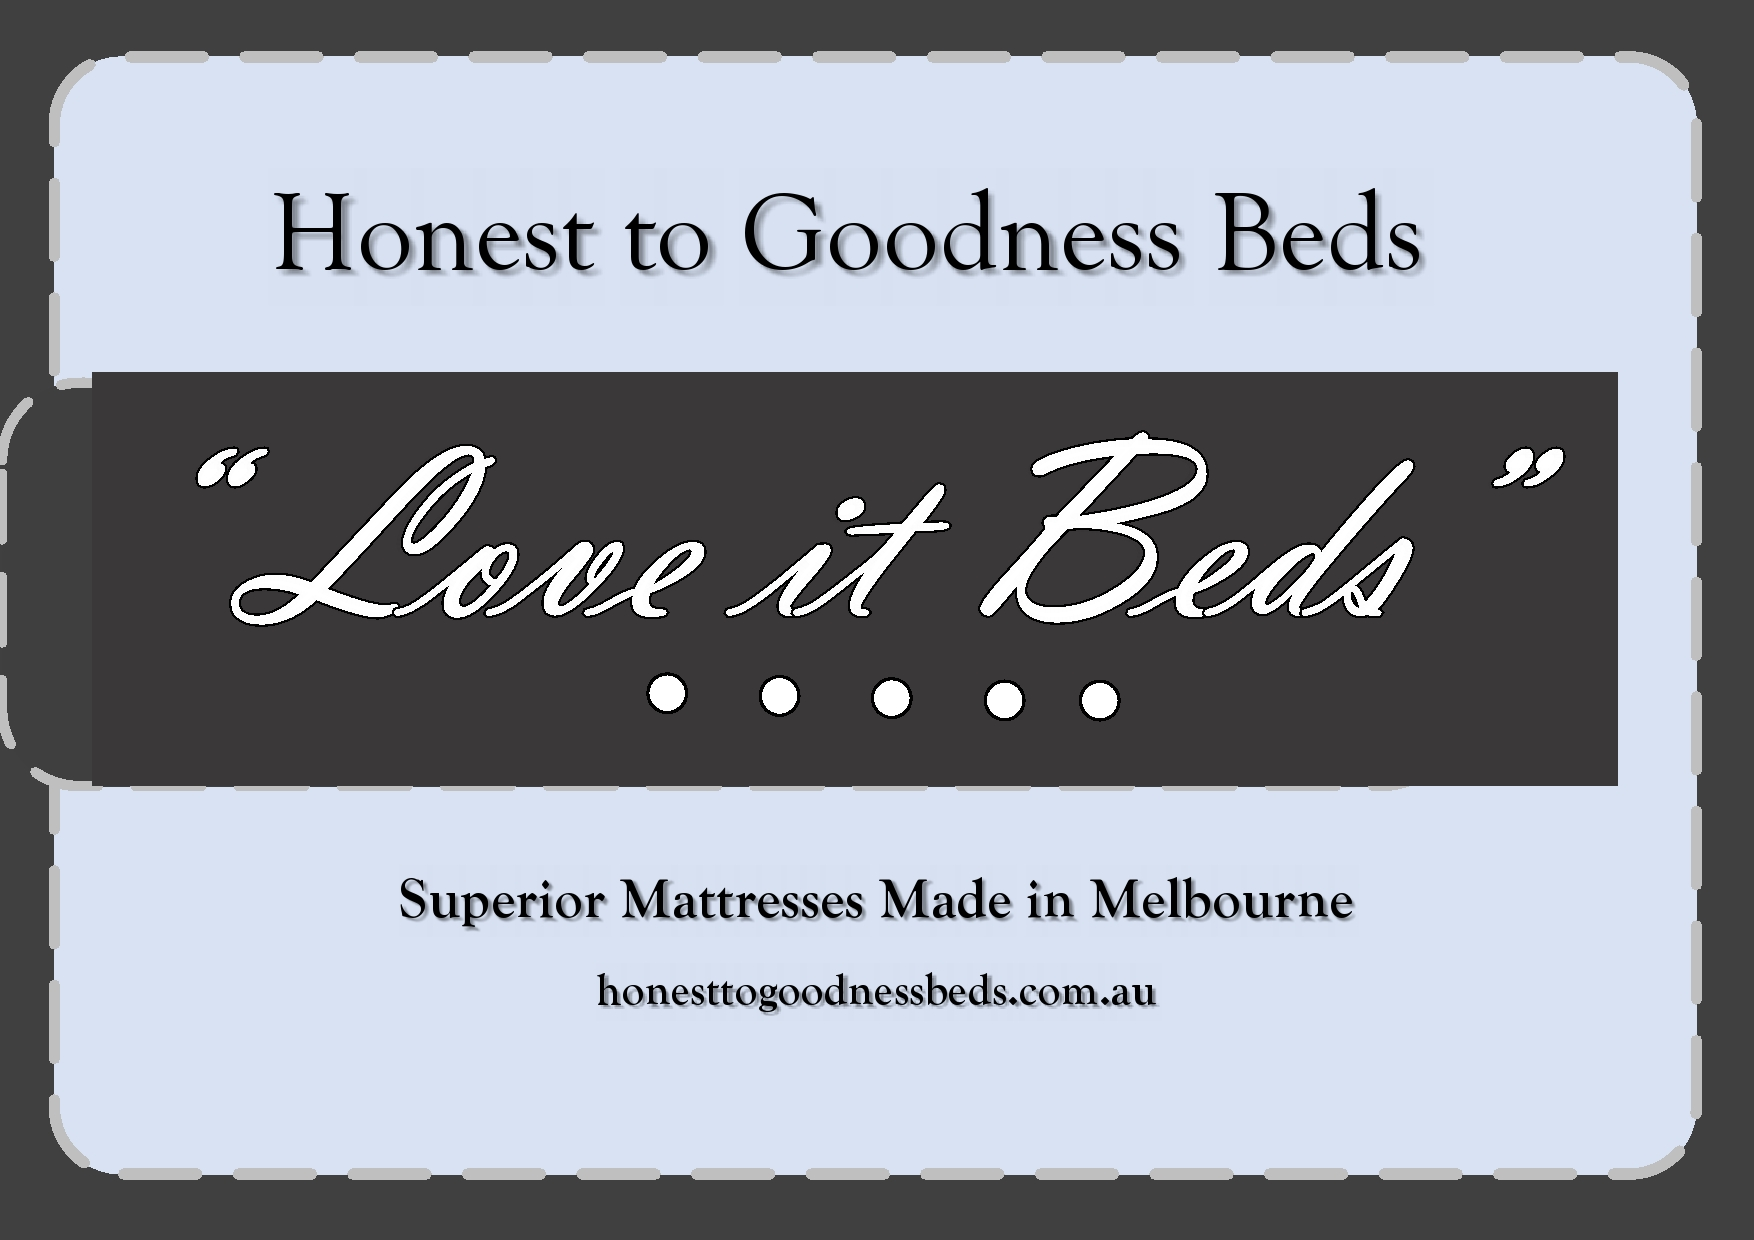 Honest To Goodness Beds